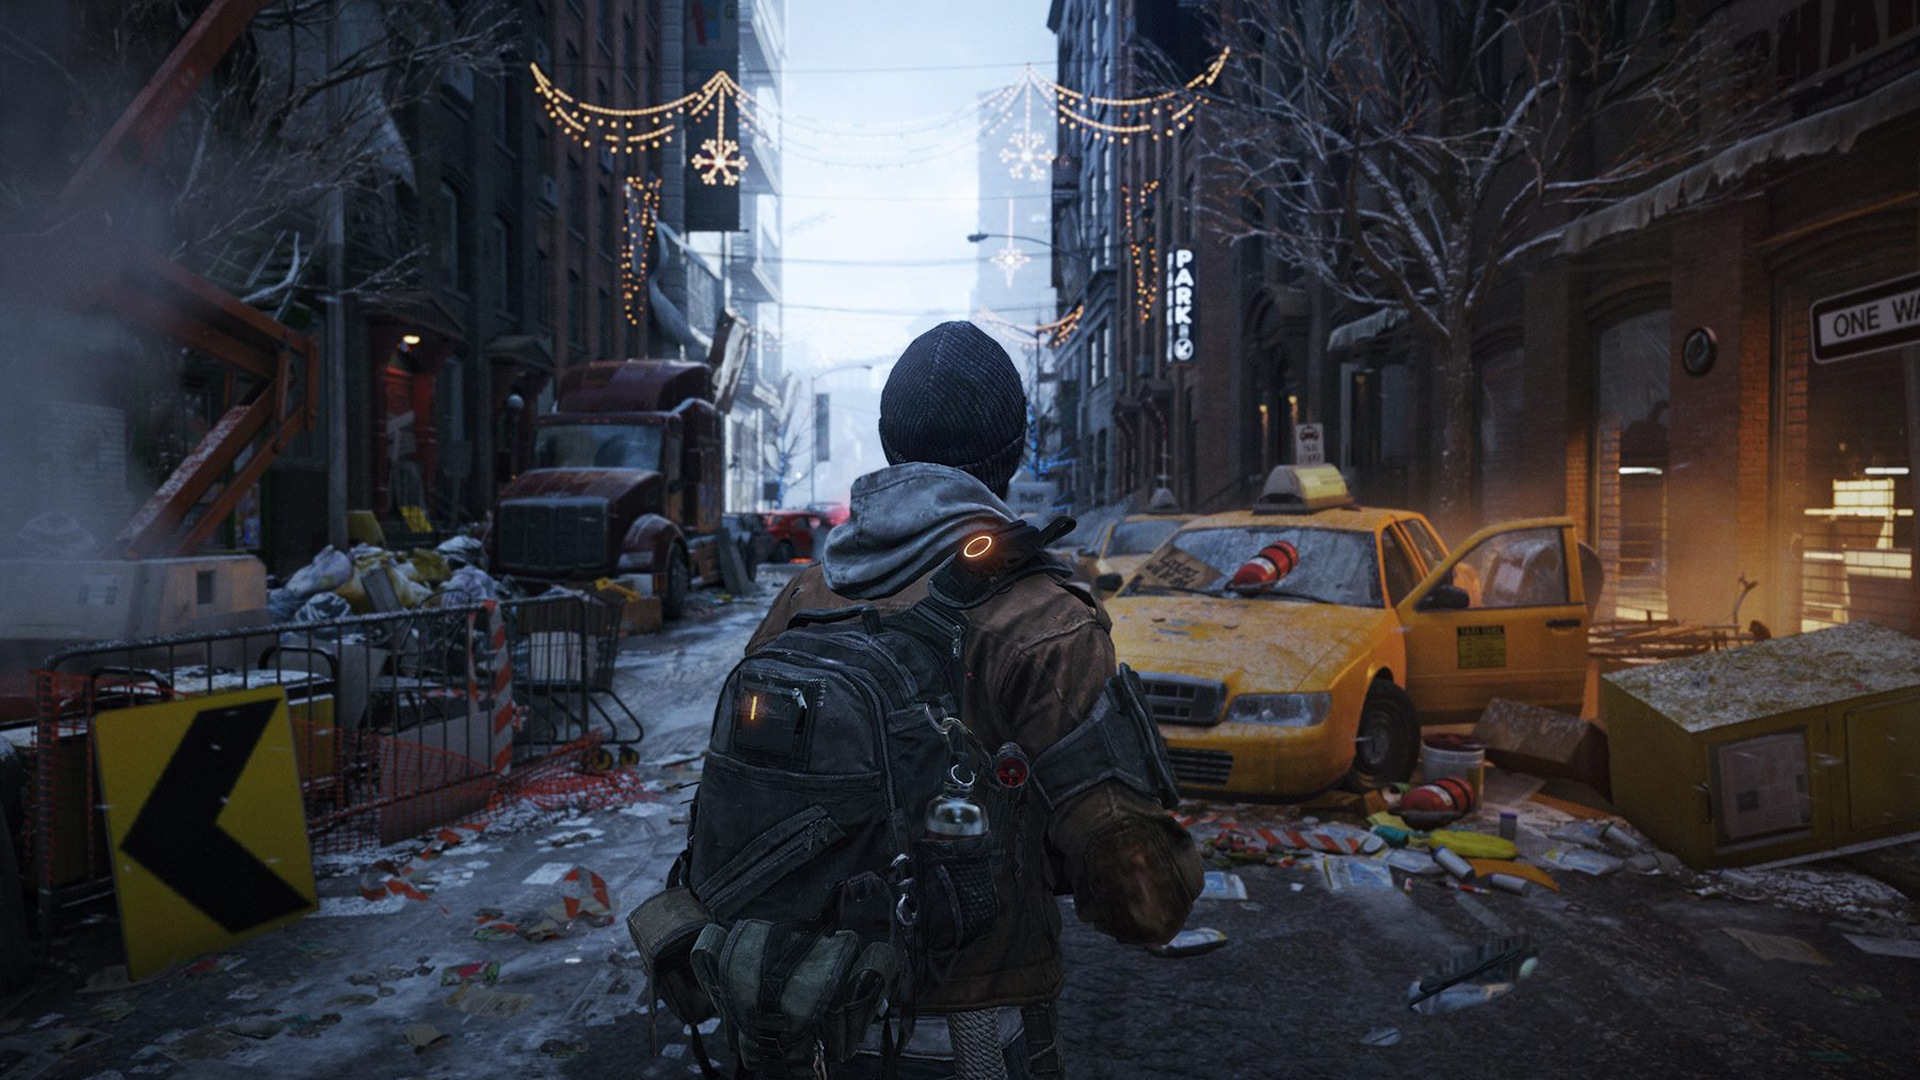 tom clancy's the division, pc game hd wallpapers #3 - 1920x1080